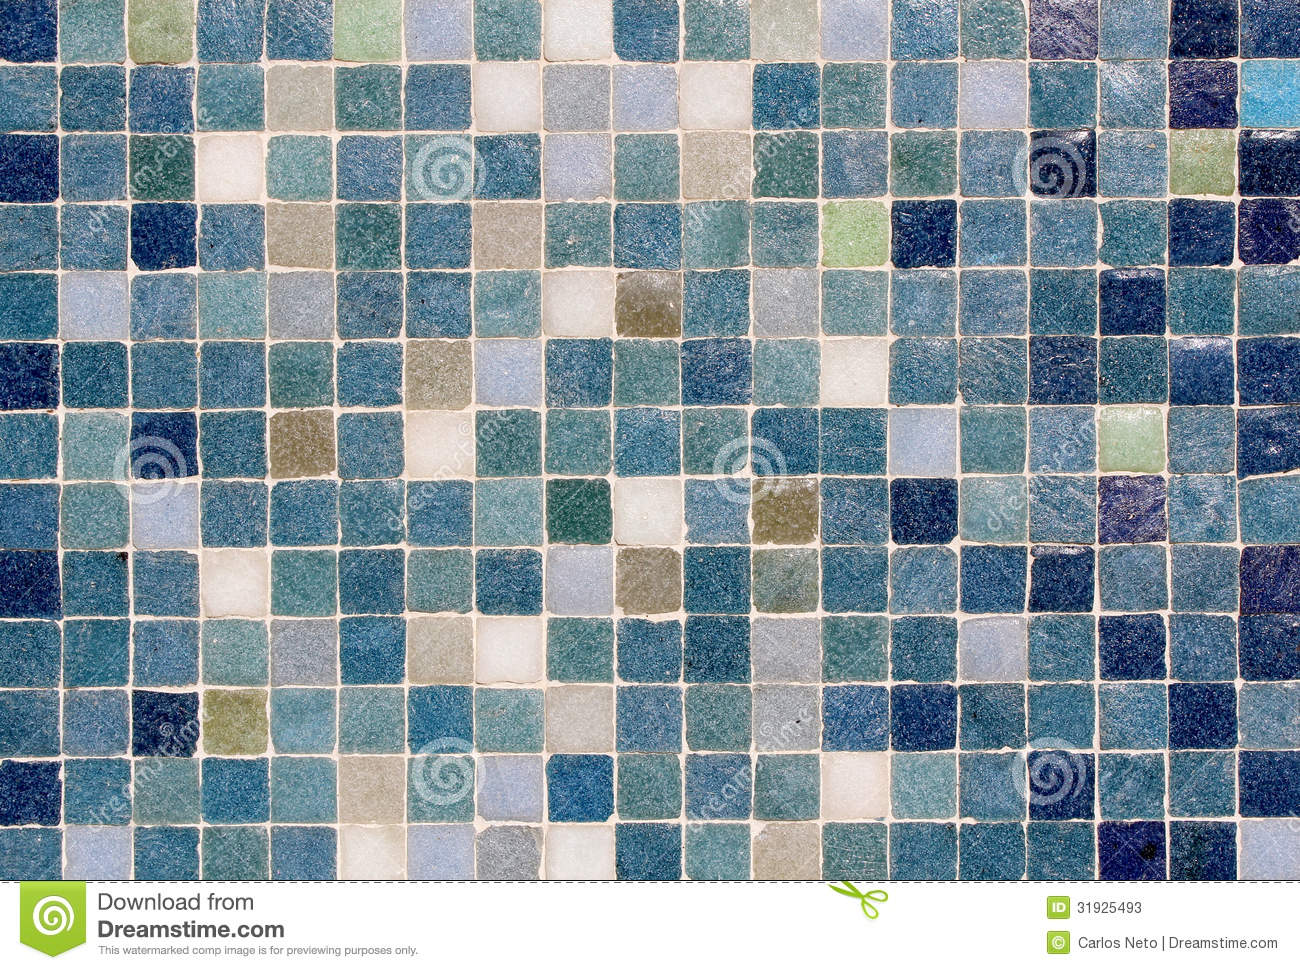 Modern Architecture Tile Texture Background Stock Image - Image of construction, modern: 31925493